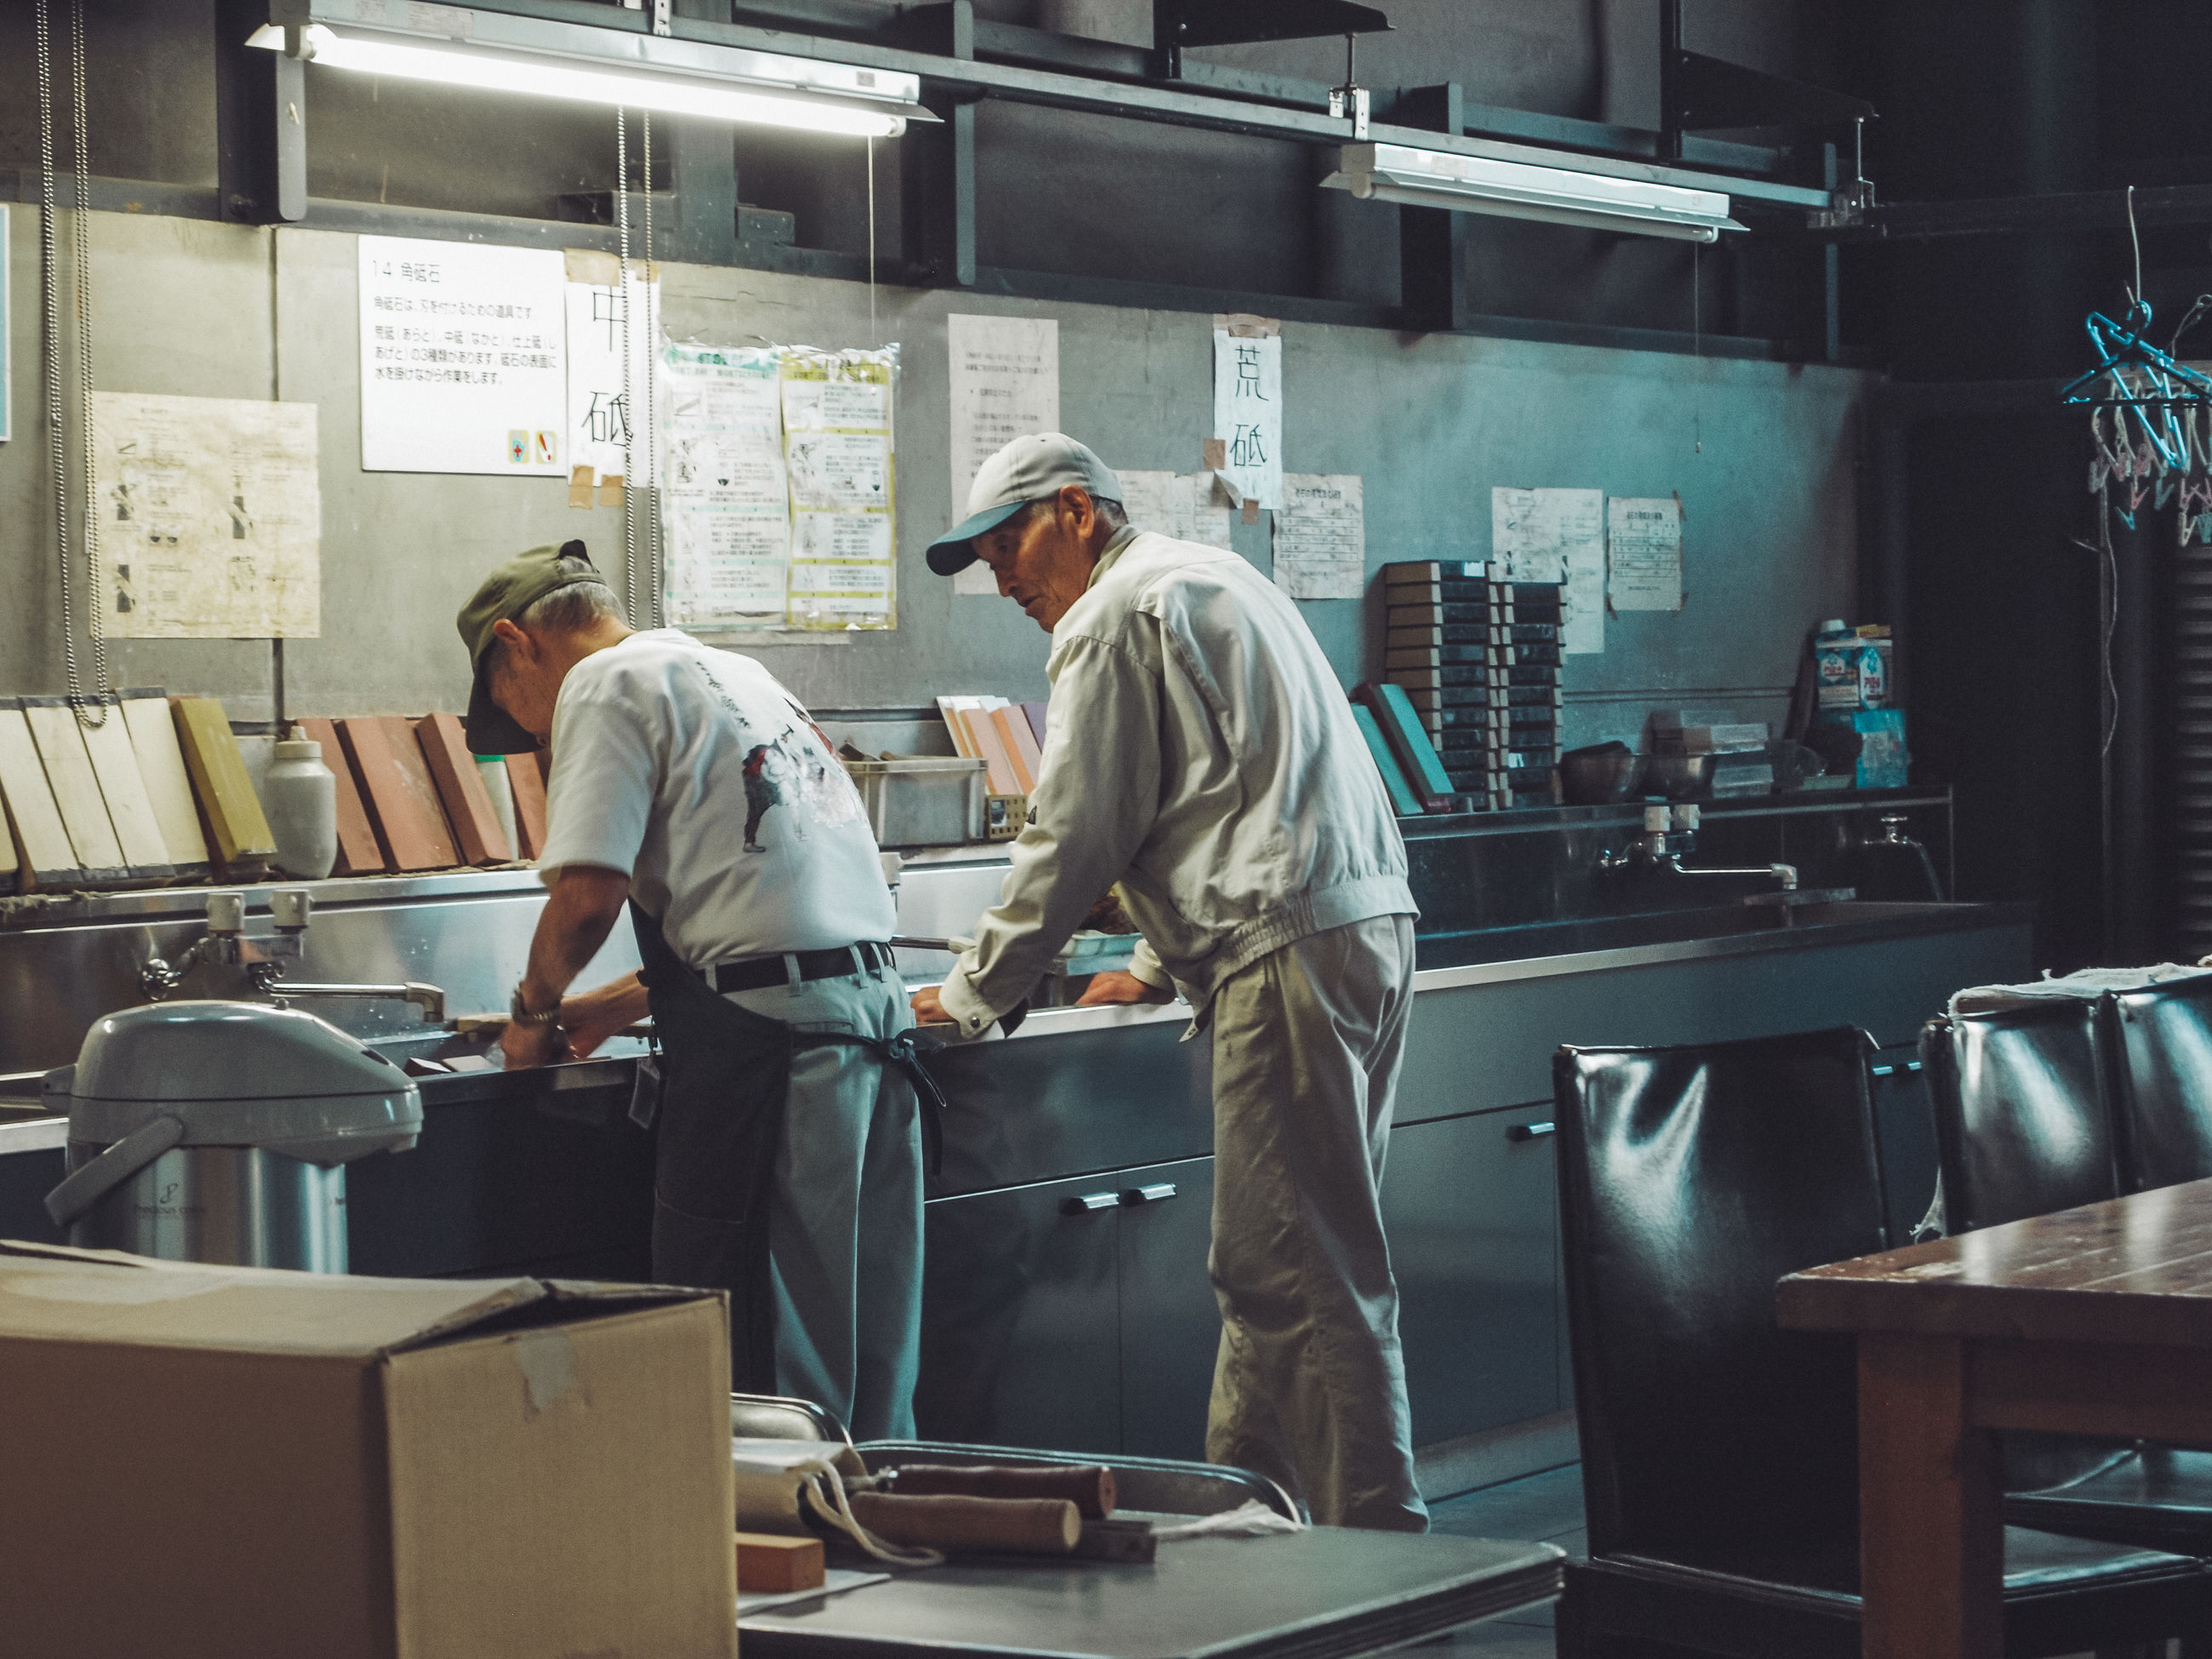 men, standing, real people, occupation, two people, indoors, business, people, males, working, preparation, adult, uniform, three quarter length, restaurant, teamwork, cooperation, table, casual clothing, kitchen, chef, preparing food